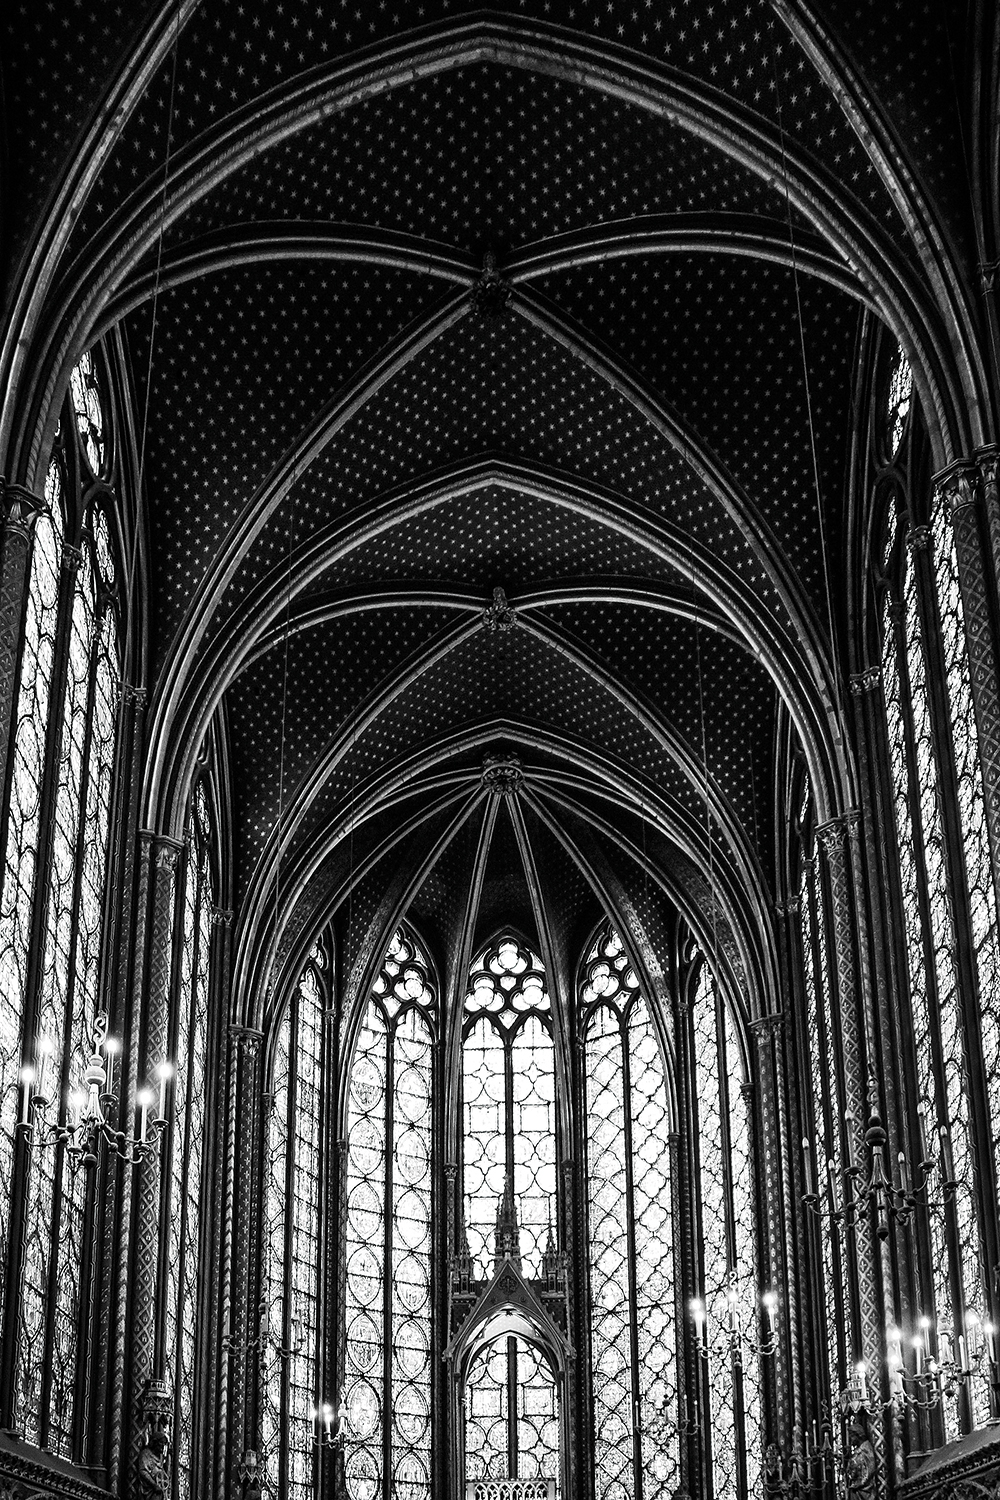 Black and white photo of the vaulted ceiling of a Gothic cathedral